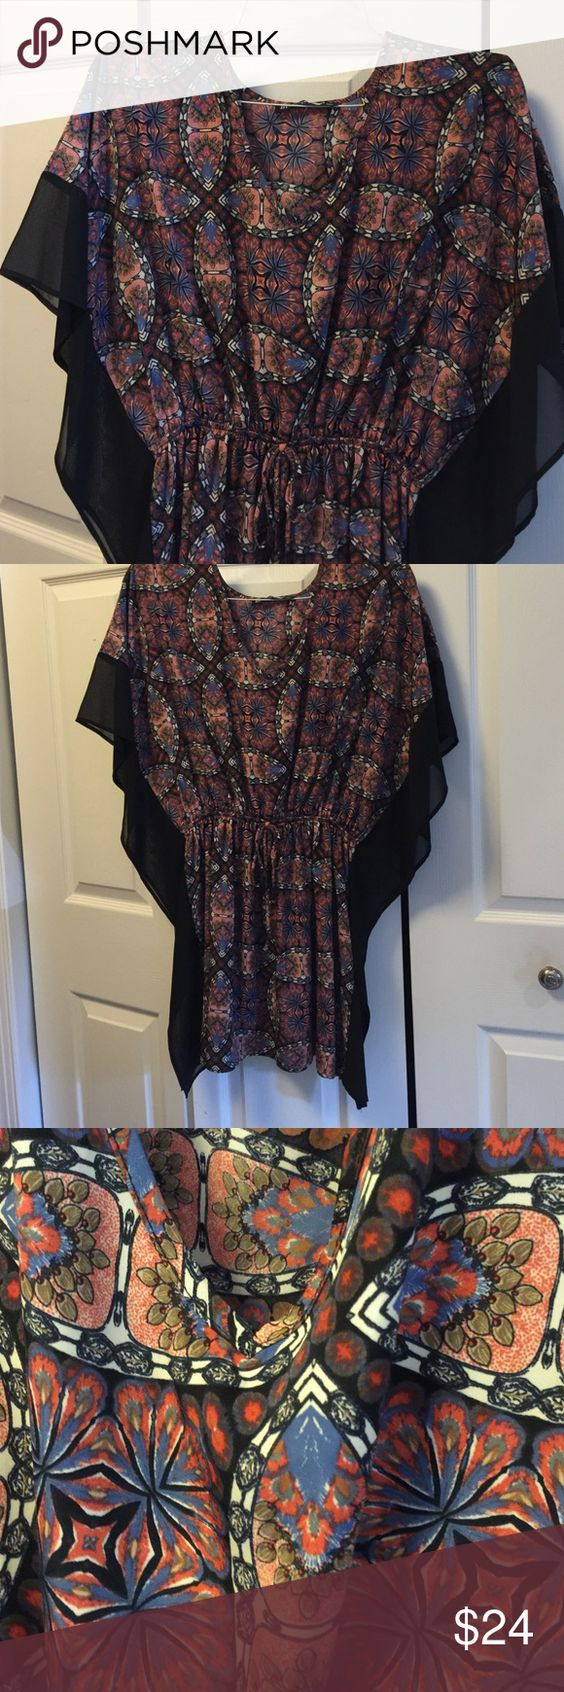 Sheer short sleeve poncho top Beautiful pattern colors waste tie is full it's elastic it stretches covers behind Shortsleeve perfect condition very attractive with black pants by together you and I Tops Tees - Short Sleeve